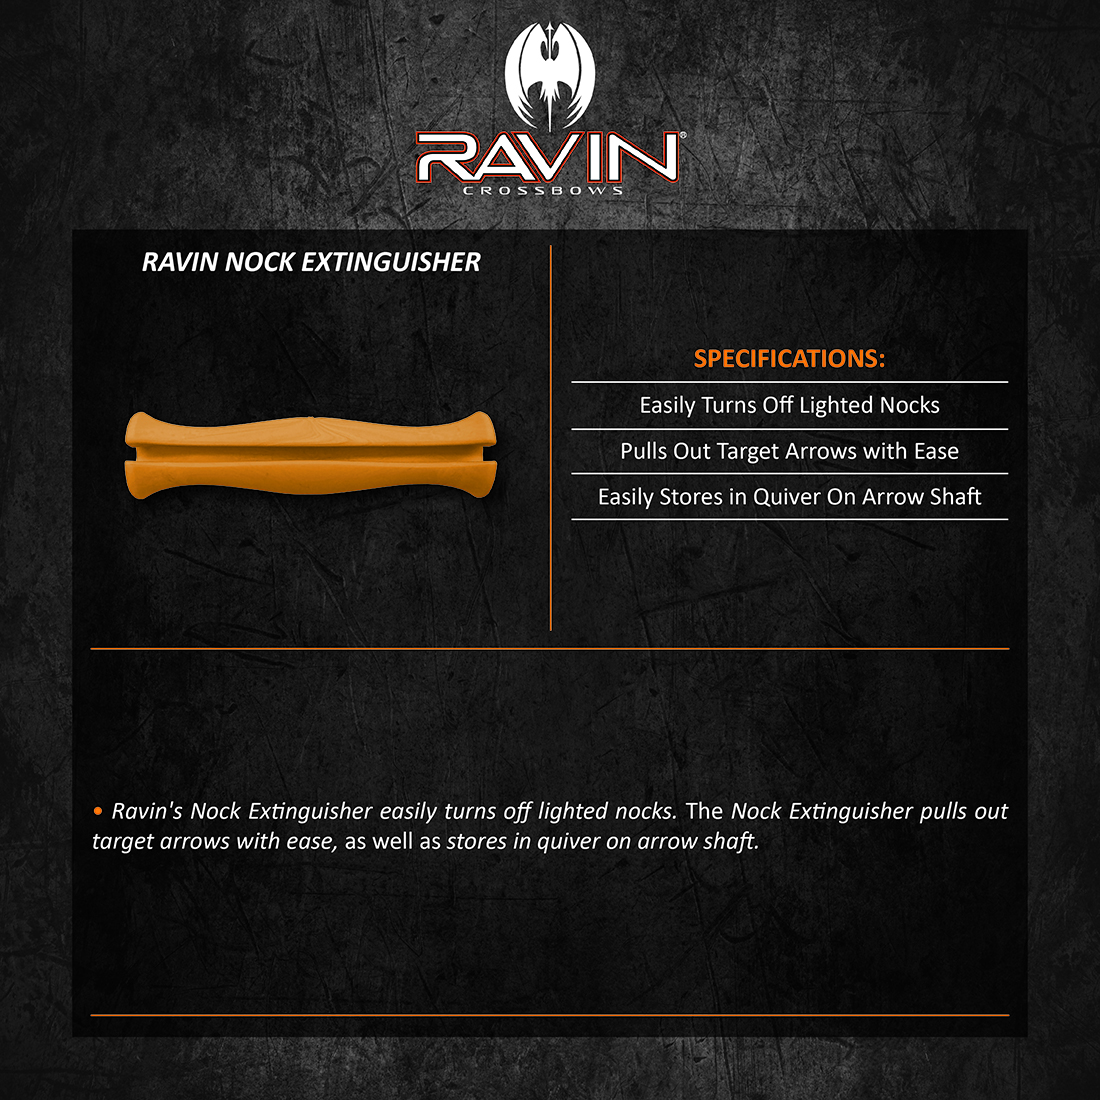 Ravin_Nock_Extinguisher_Product_Description